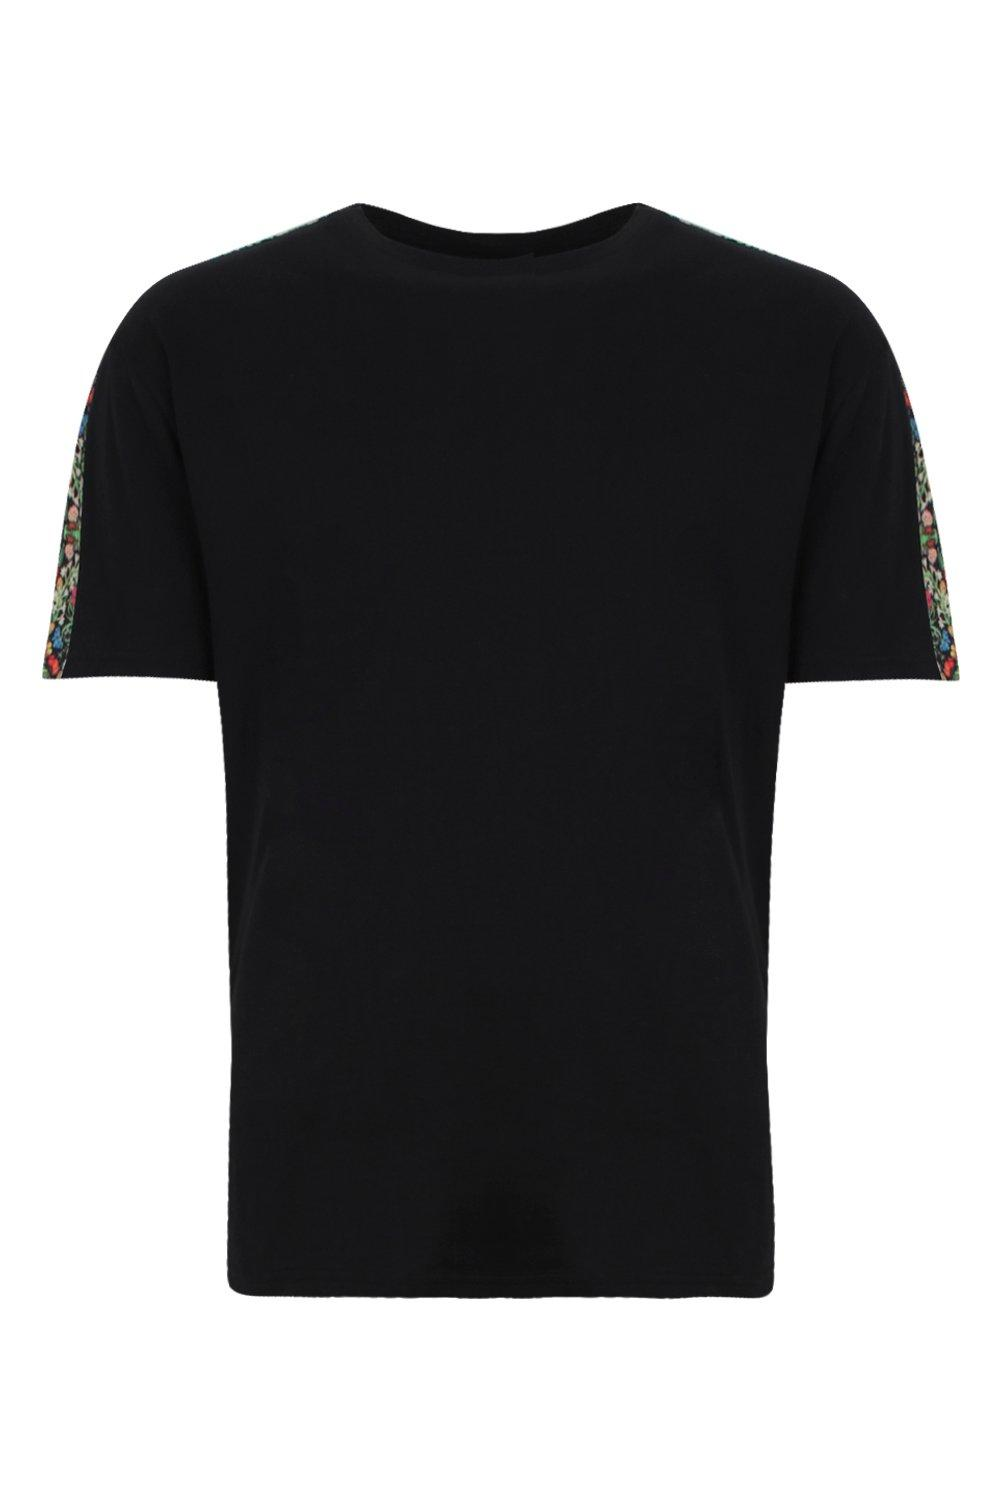 boohooMAN black Printed Panel Sleeve Tee